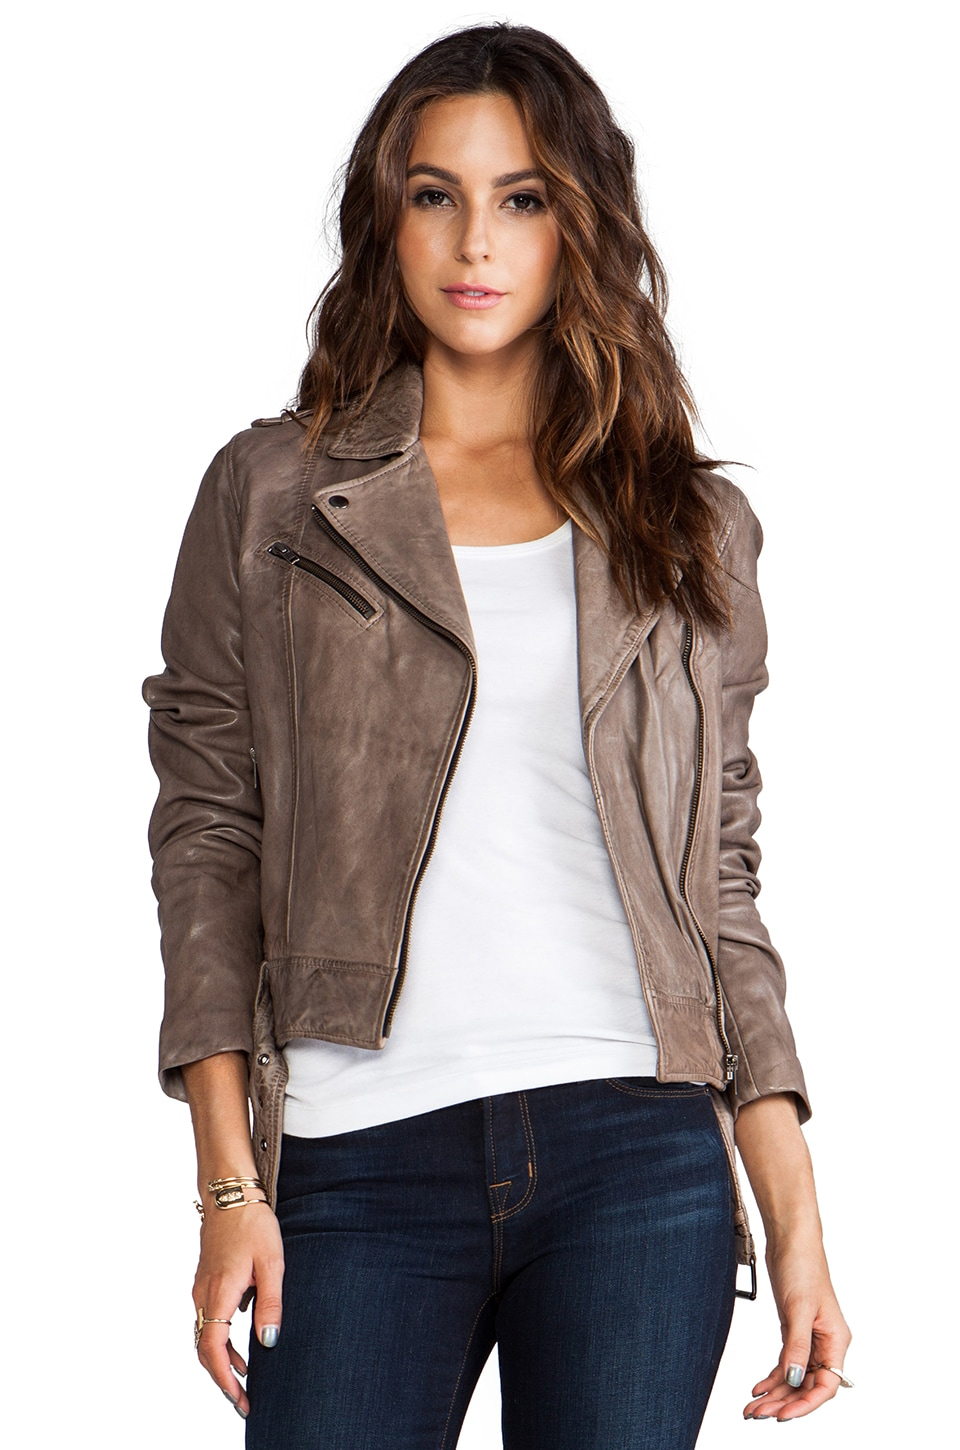 Soia & Kyo Janelle Leather Jacket in Stone